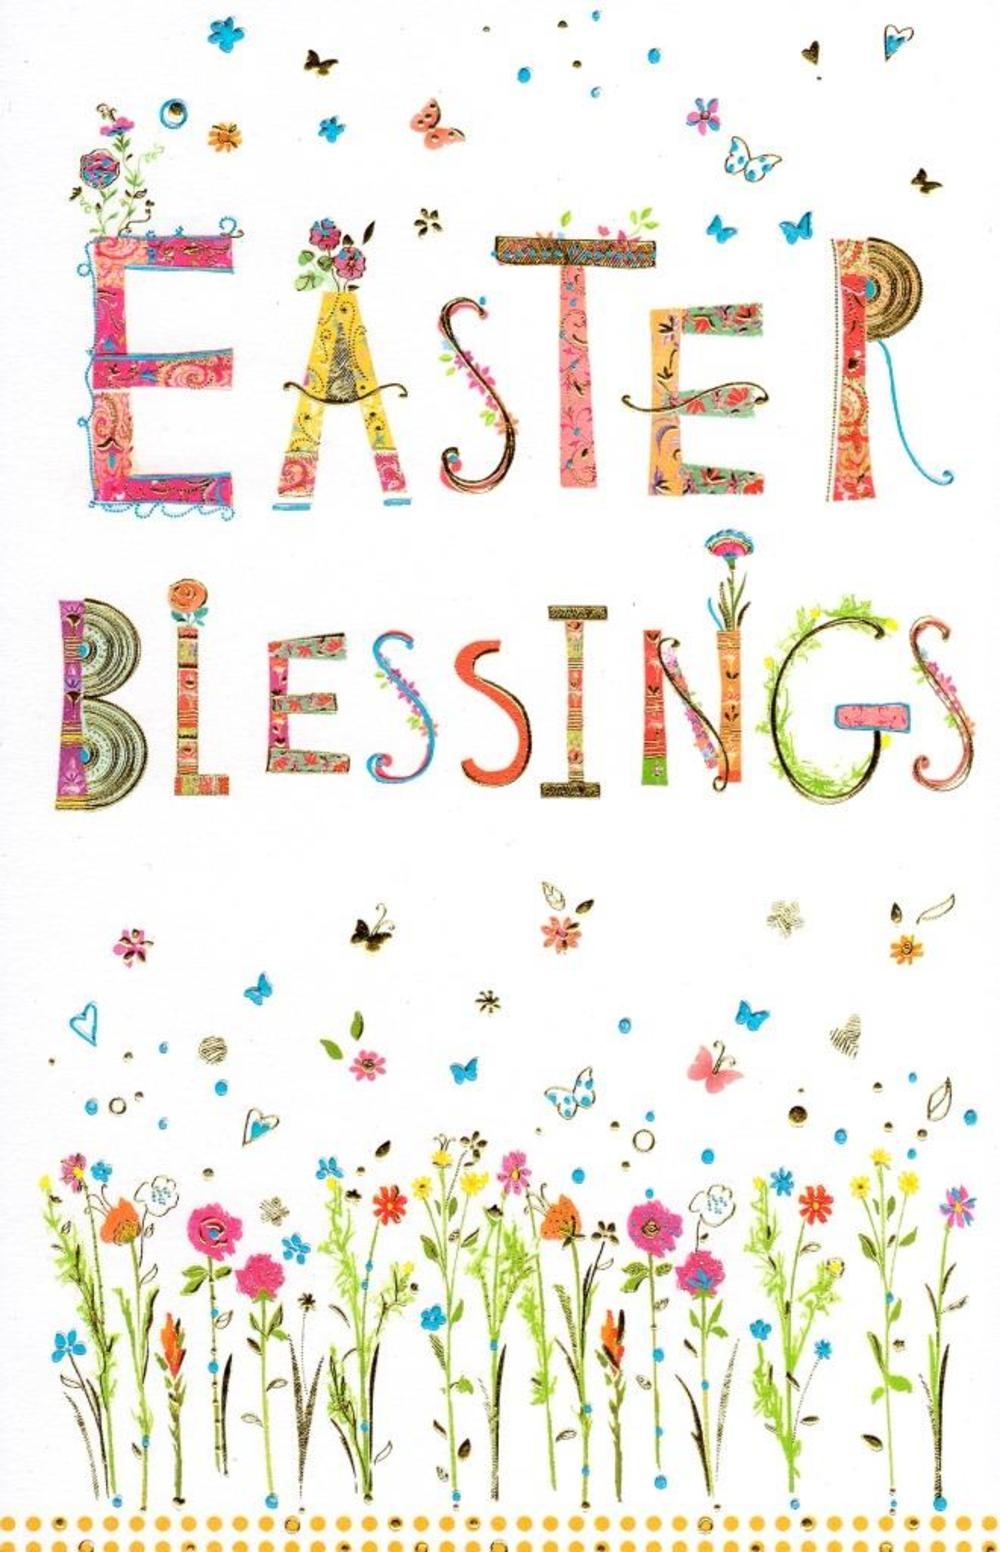 Easter Blessings Pretty Religious Greeting Card.